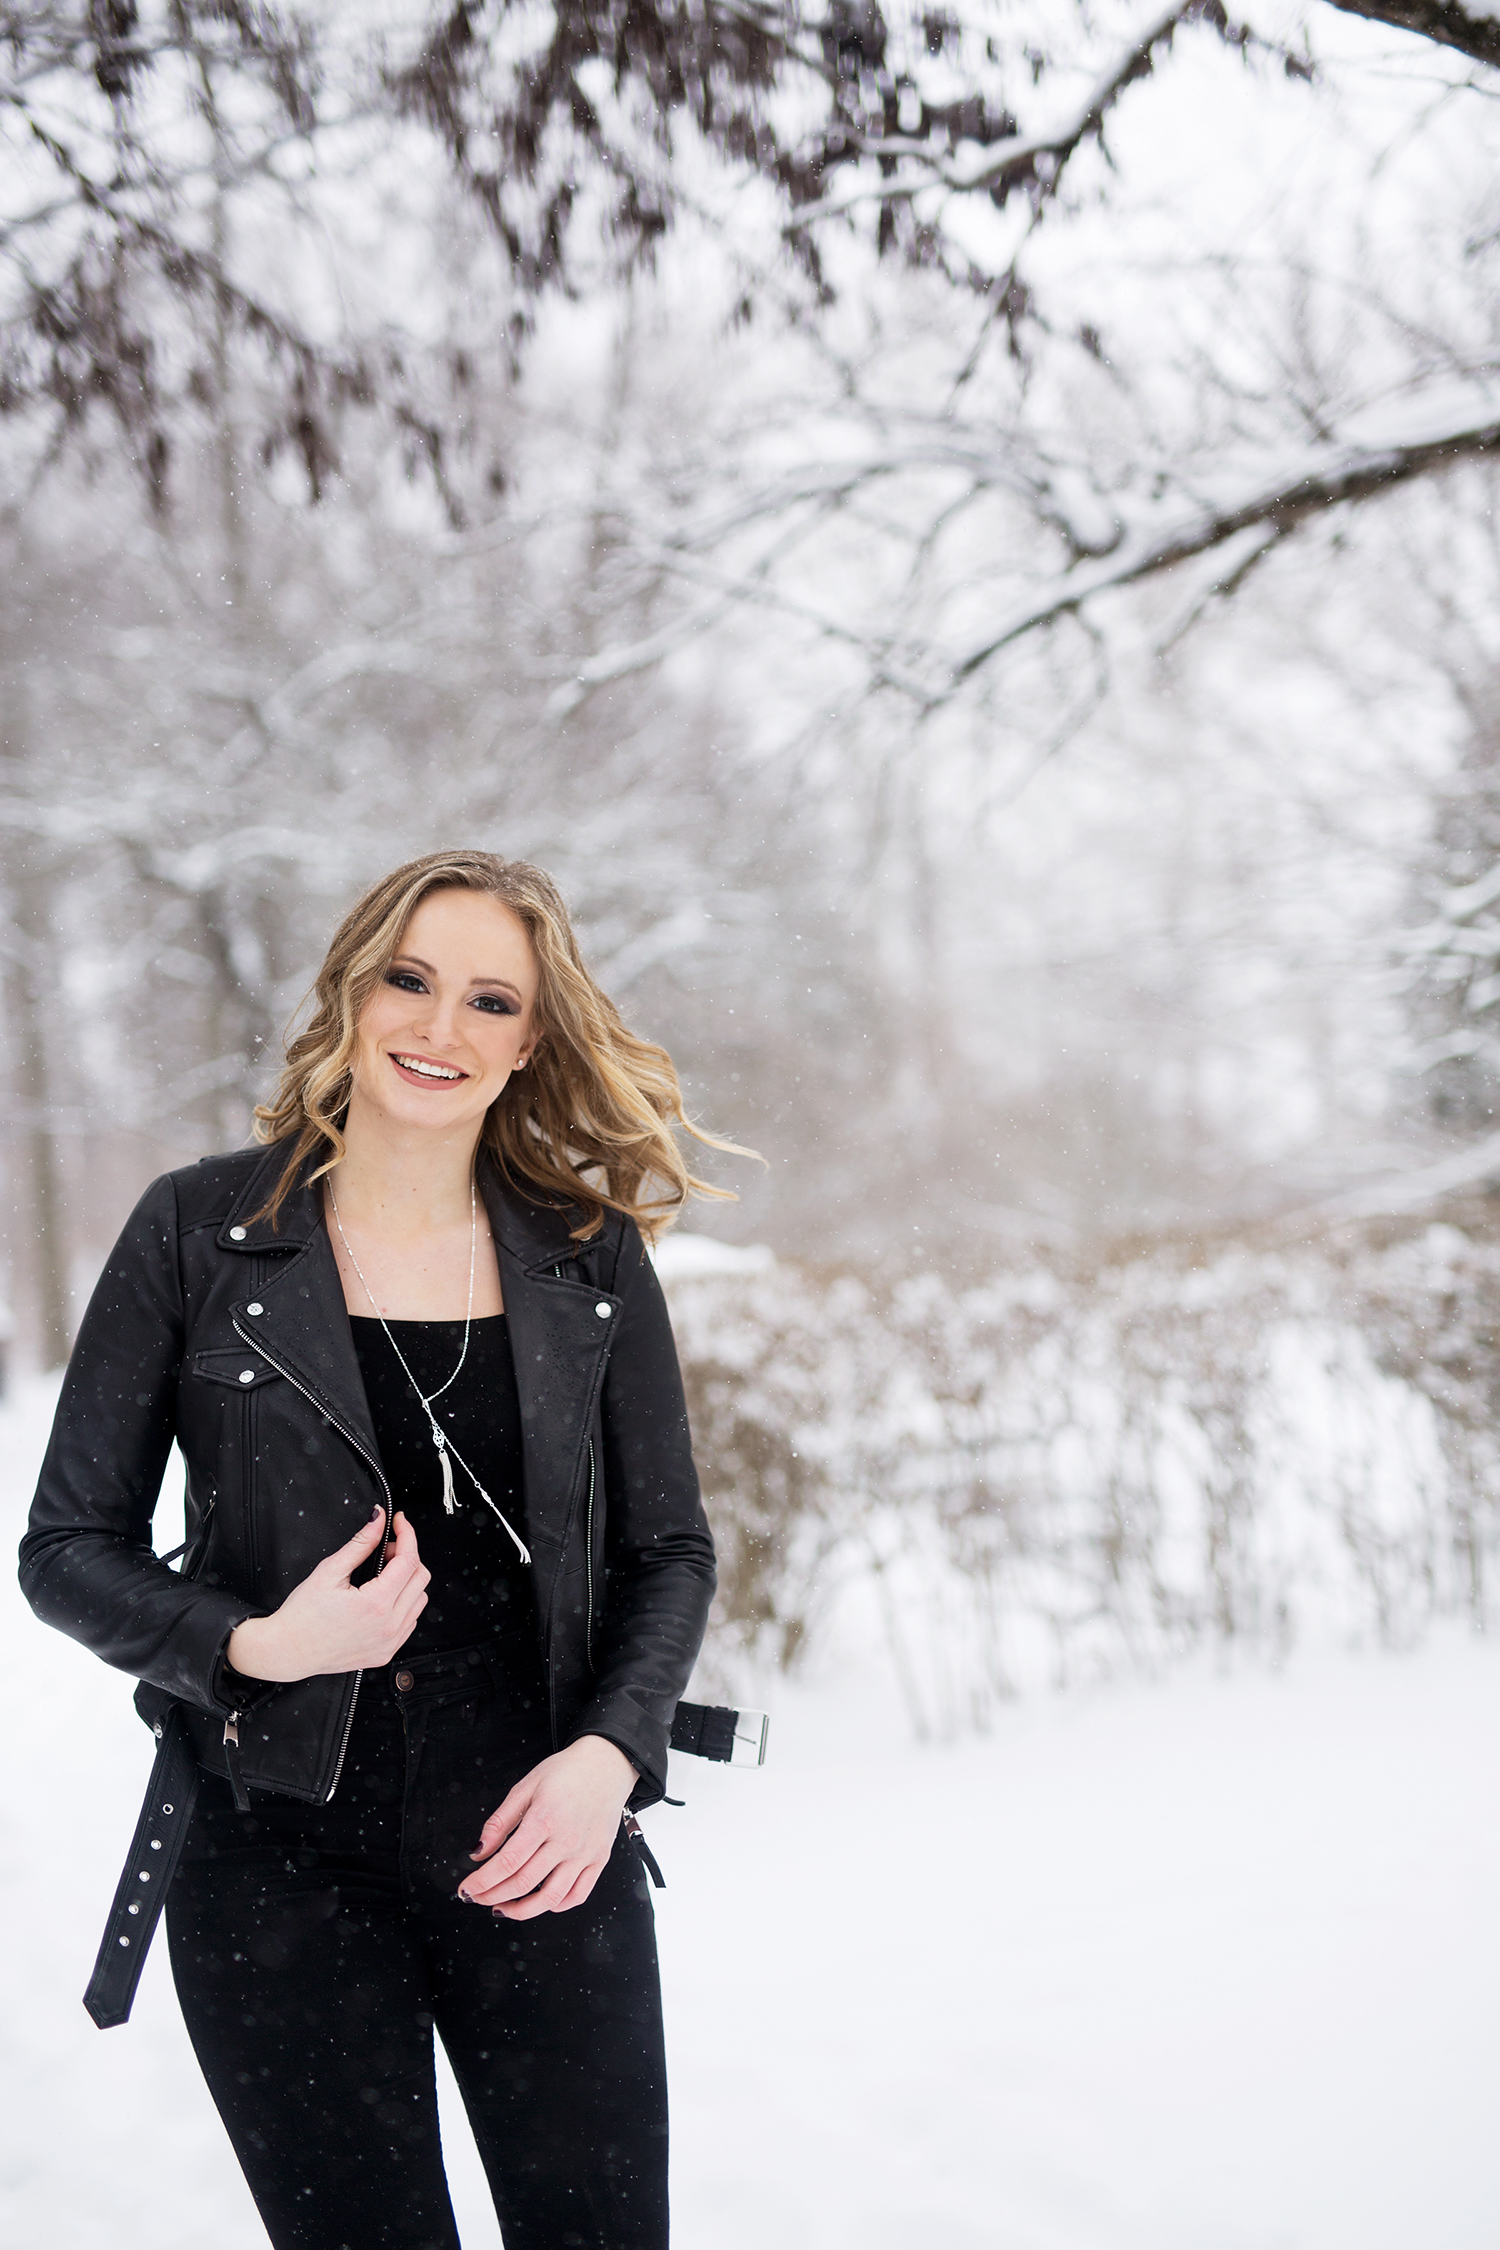 a girl in all black smiling in the snow.